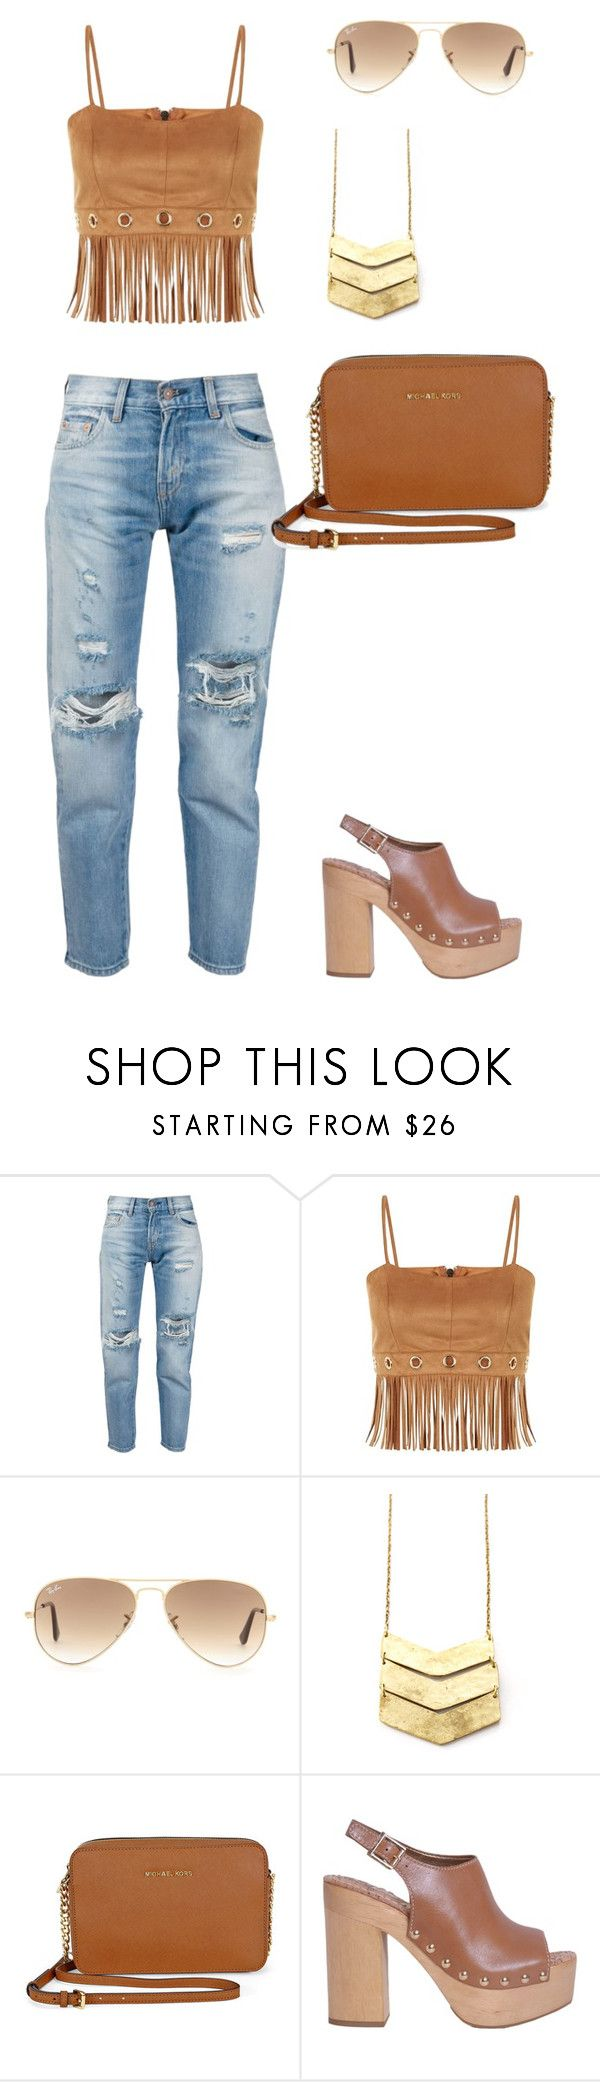 """""""Casual..."""" by sylver-fang on Polyvore featuring Levi's, Parisian, Ray-Ban, Michael Kors, Sam Edelman, women's clothing, women, female, woman and misses"""